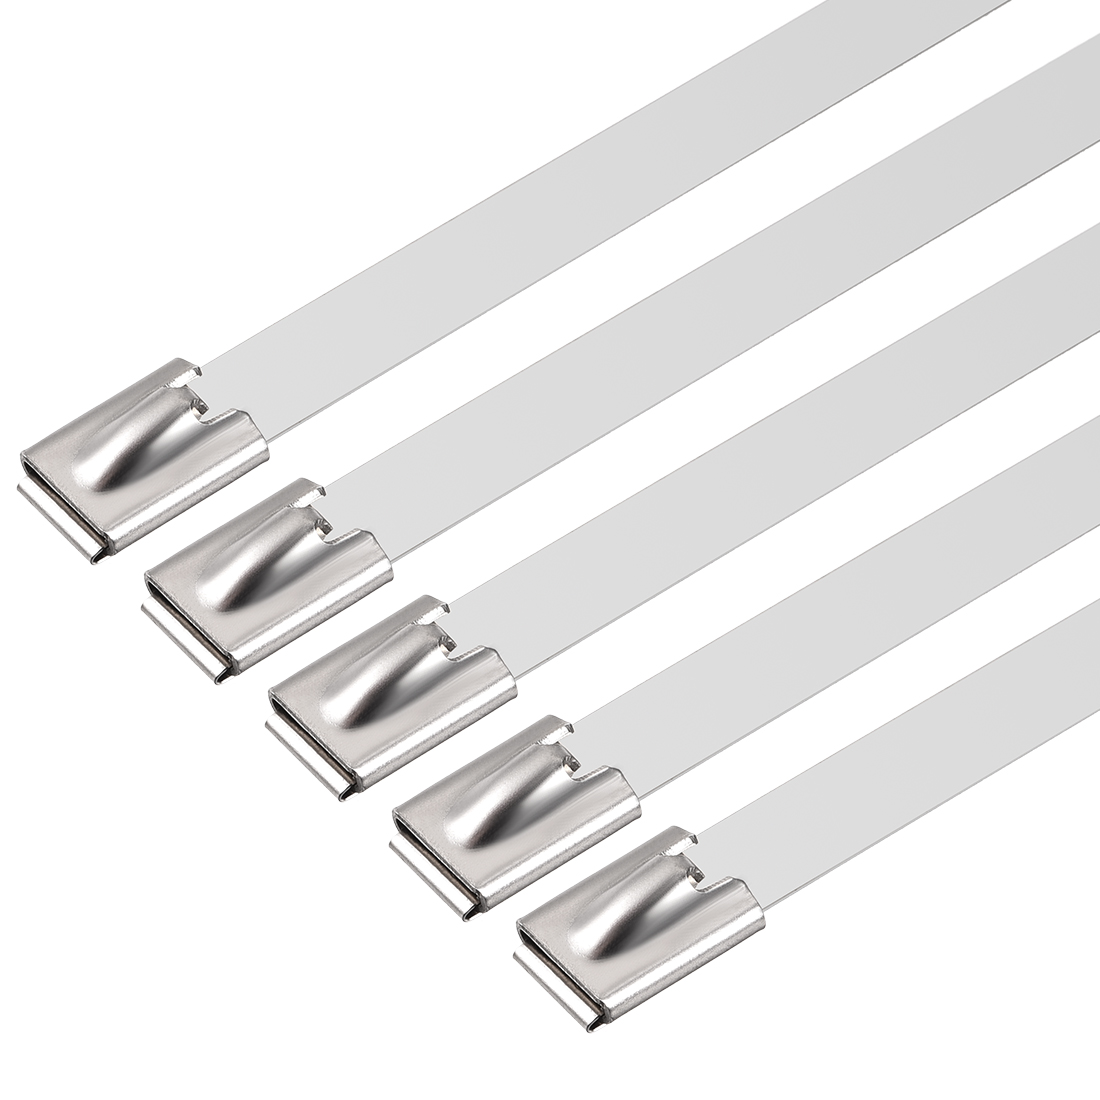 16 Inch Stainless Steel Cable Zip Ties 0.4 Inch Width Metal Exhaust Wrap 30pcs